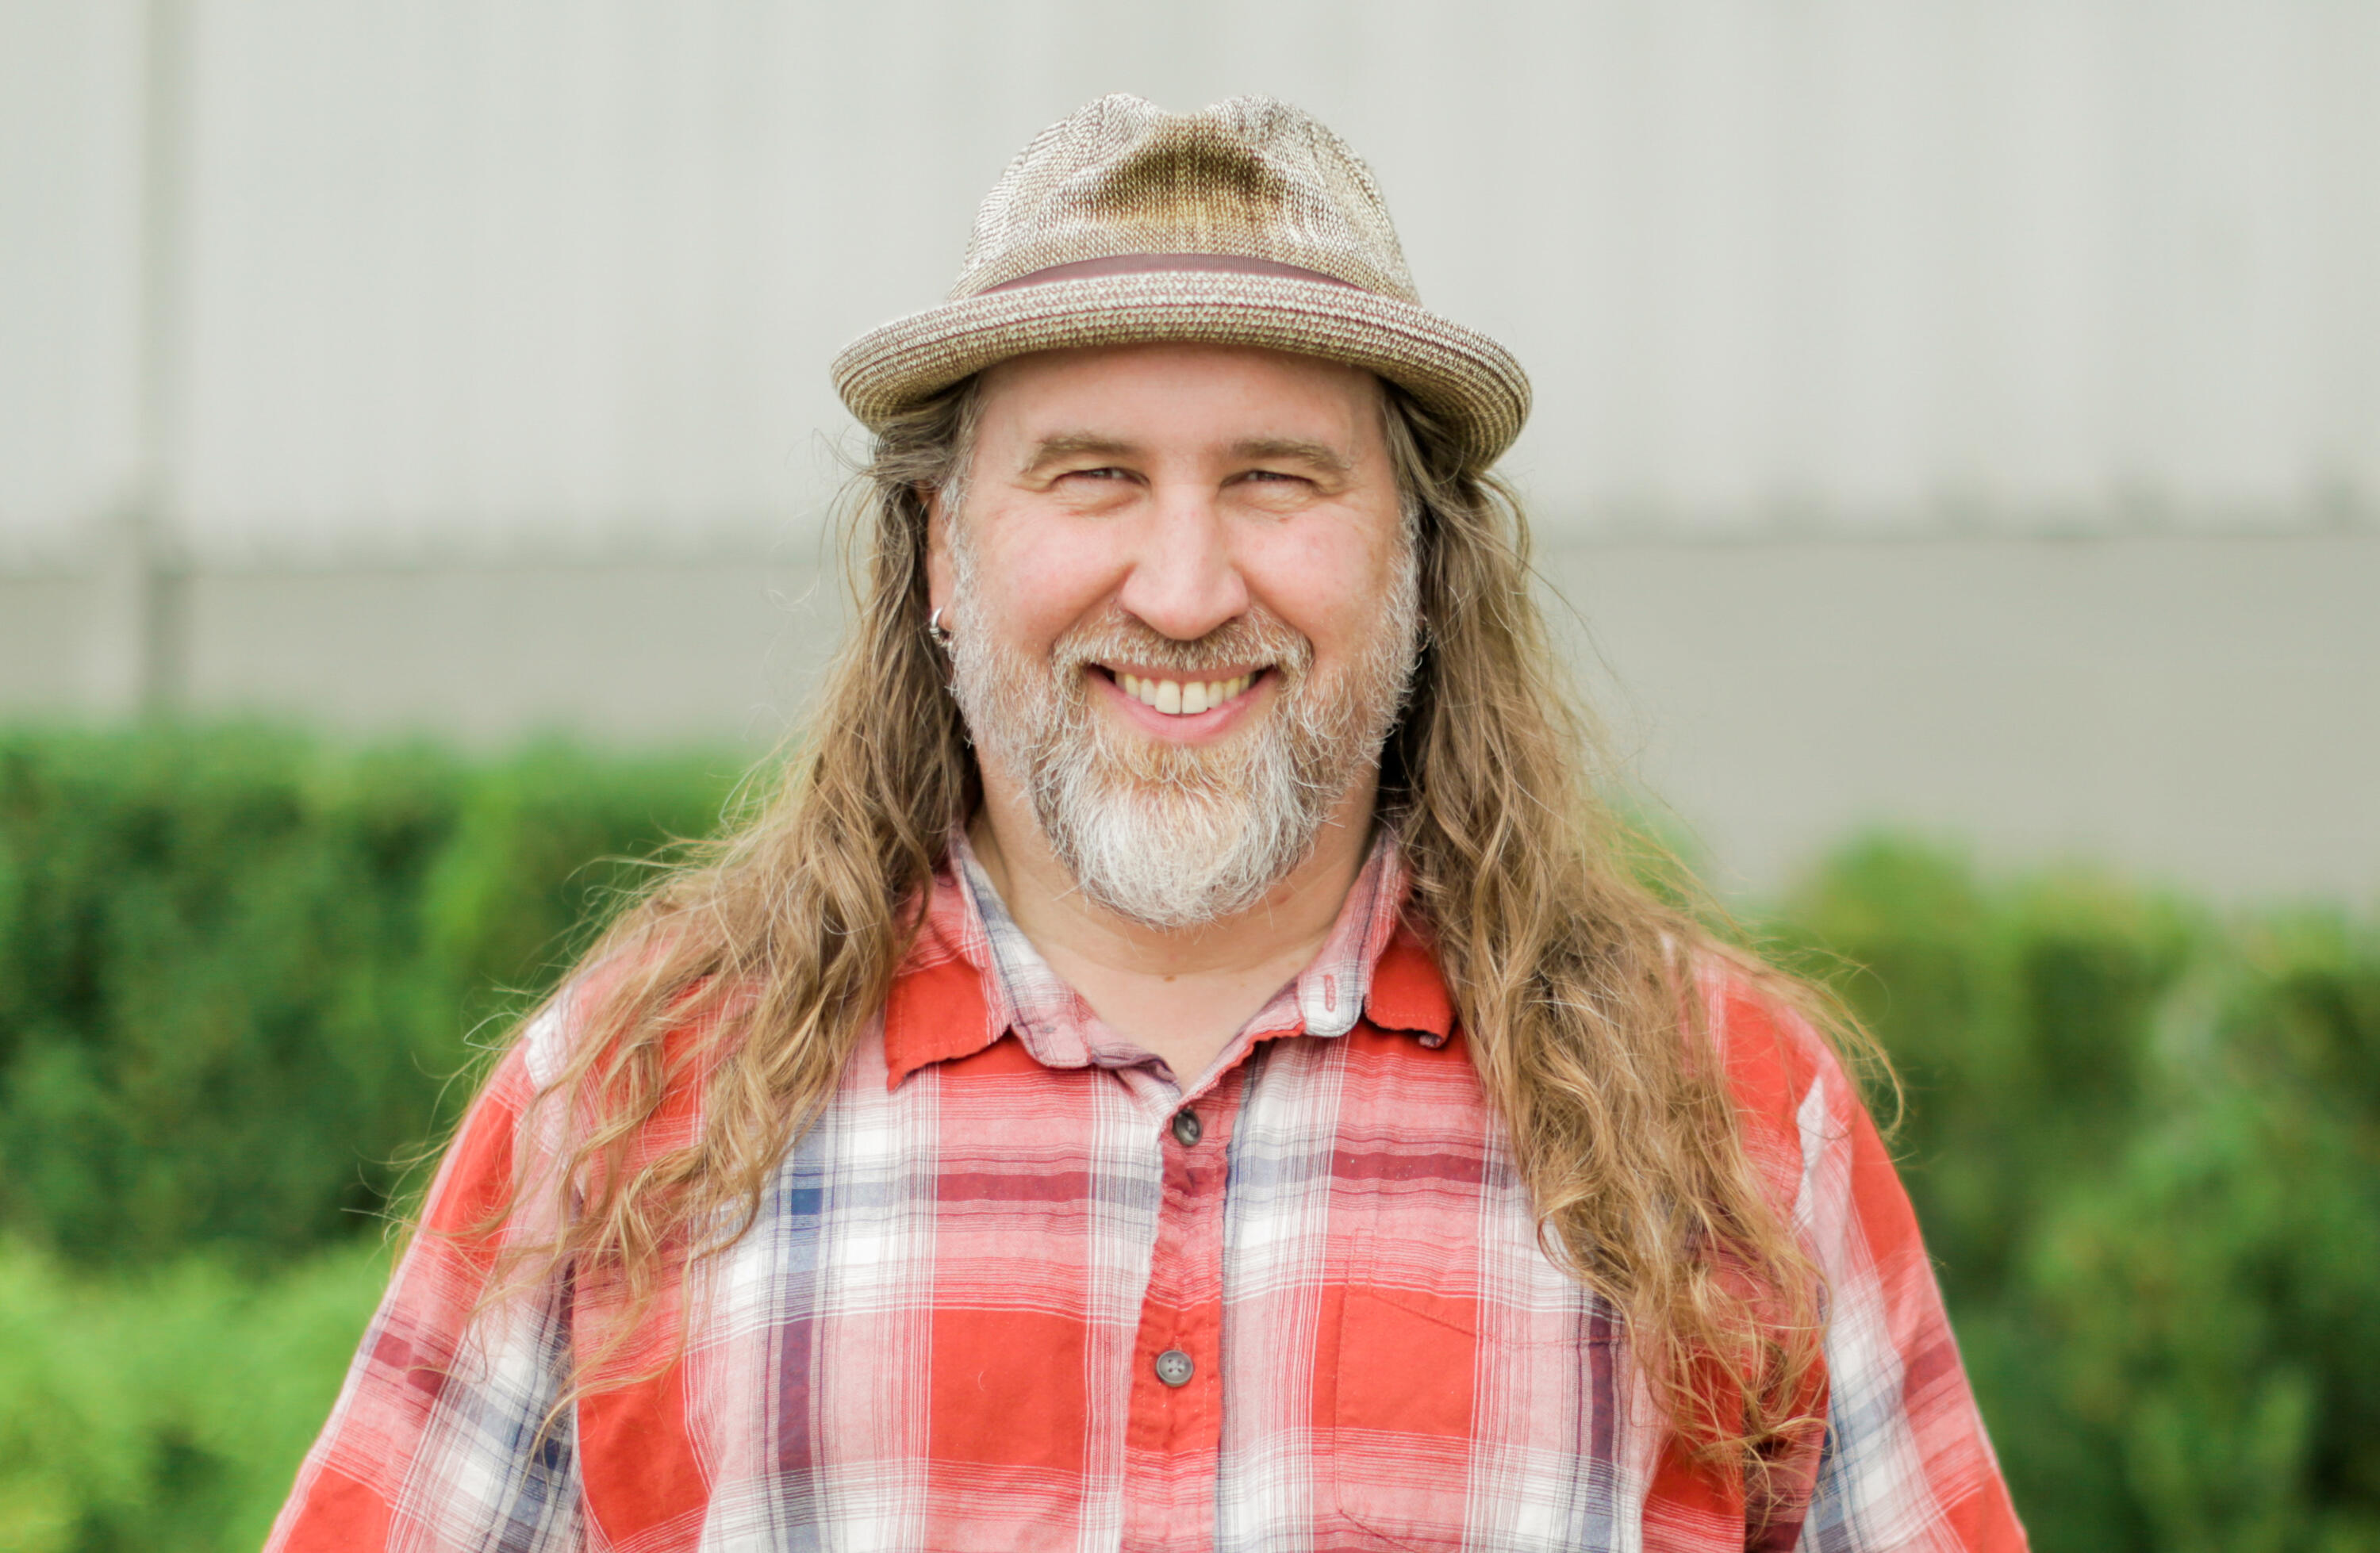 Bruxy Cavey will teach a course at Grebel